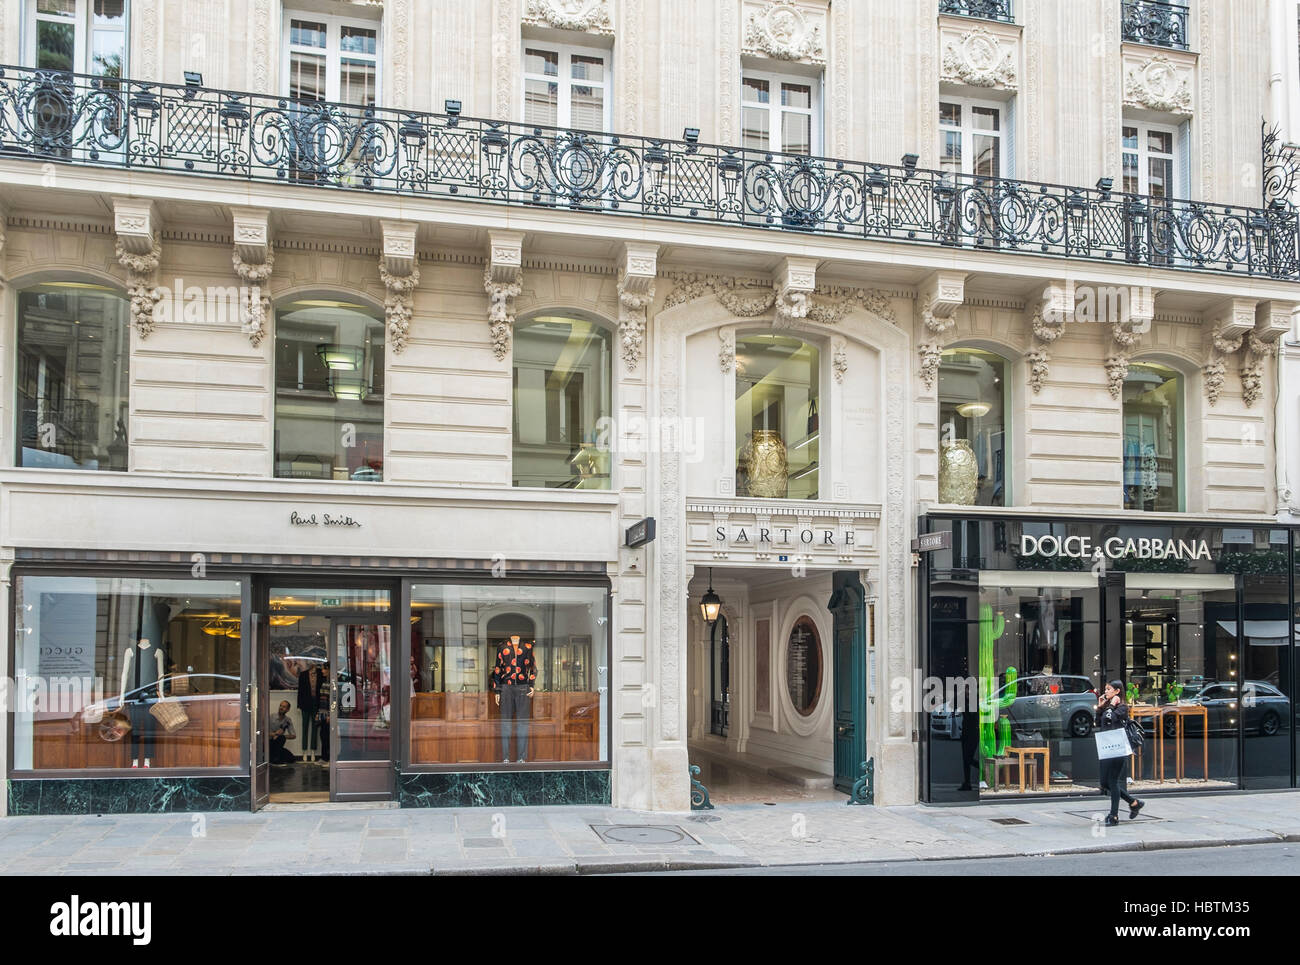 82844d8b196 paul smith, satore and dolce & gabbana stores - Stock Image